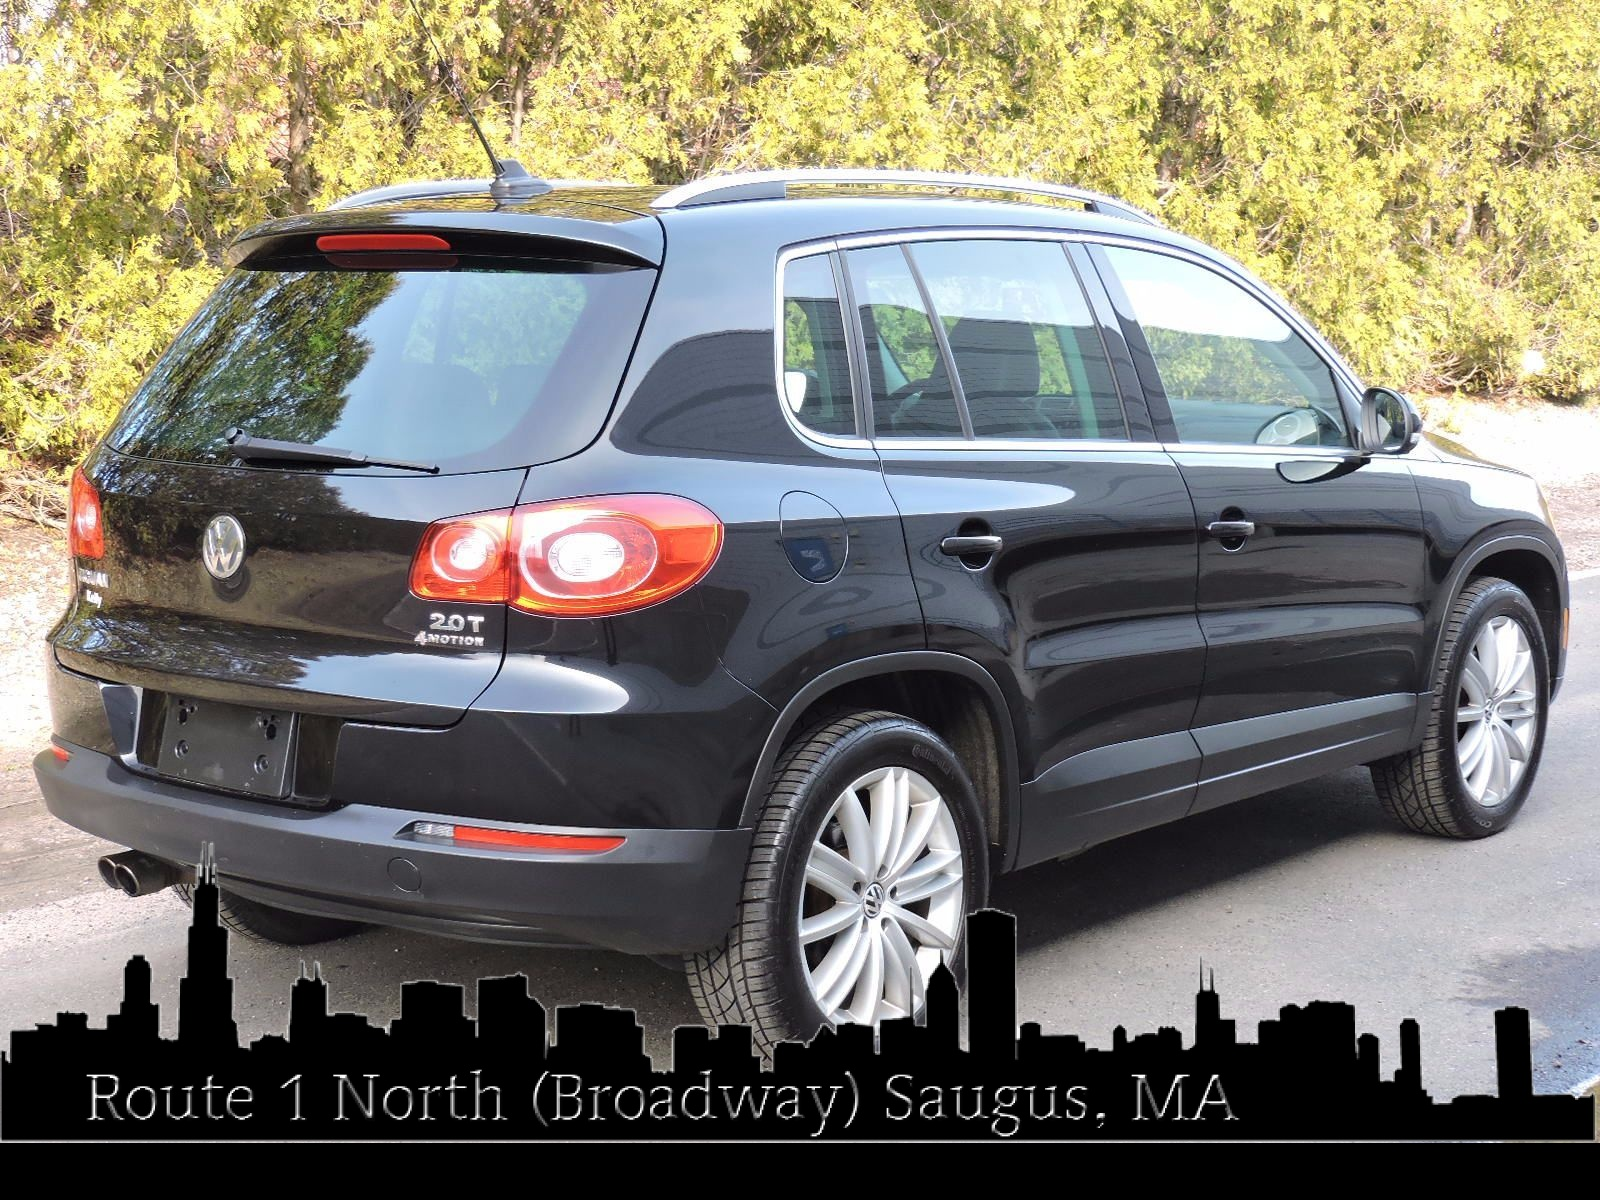 2011 Volkswagen Tiguan SEL - 4Motion - All Wheel Drive - Navigation